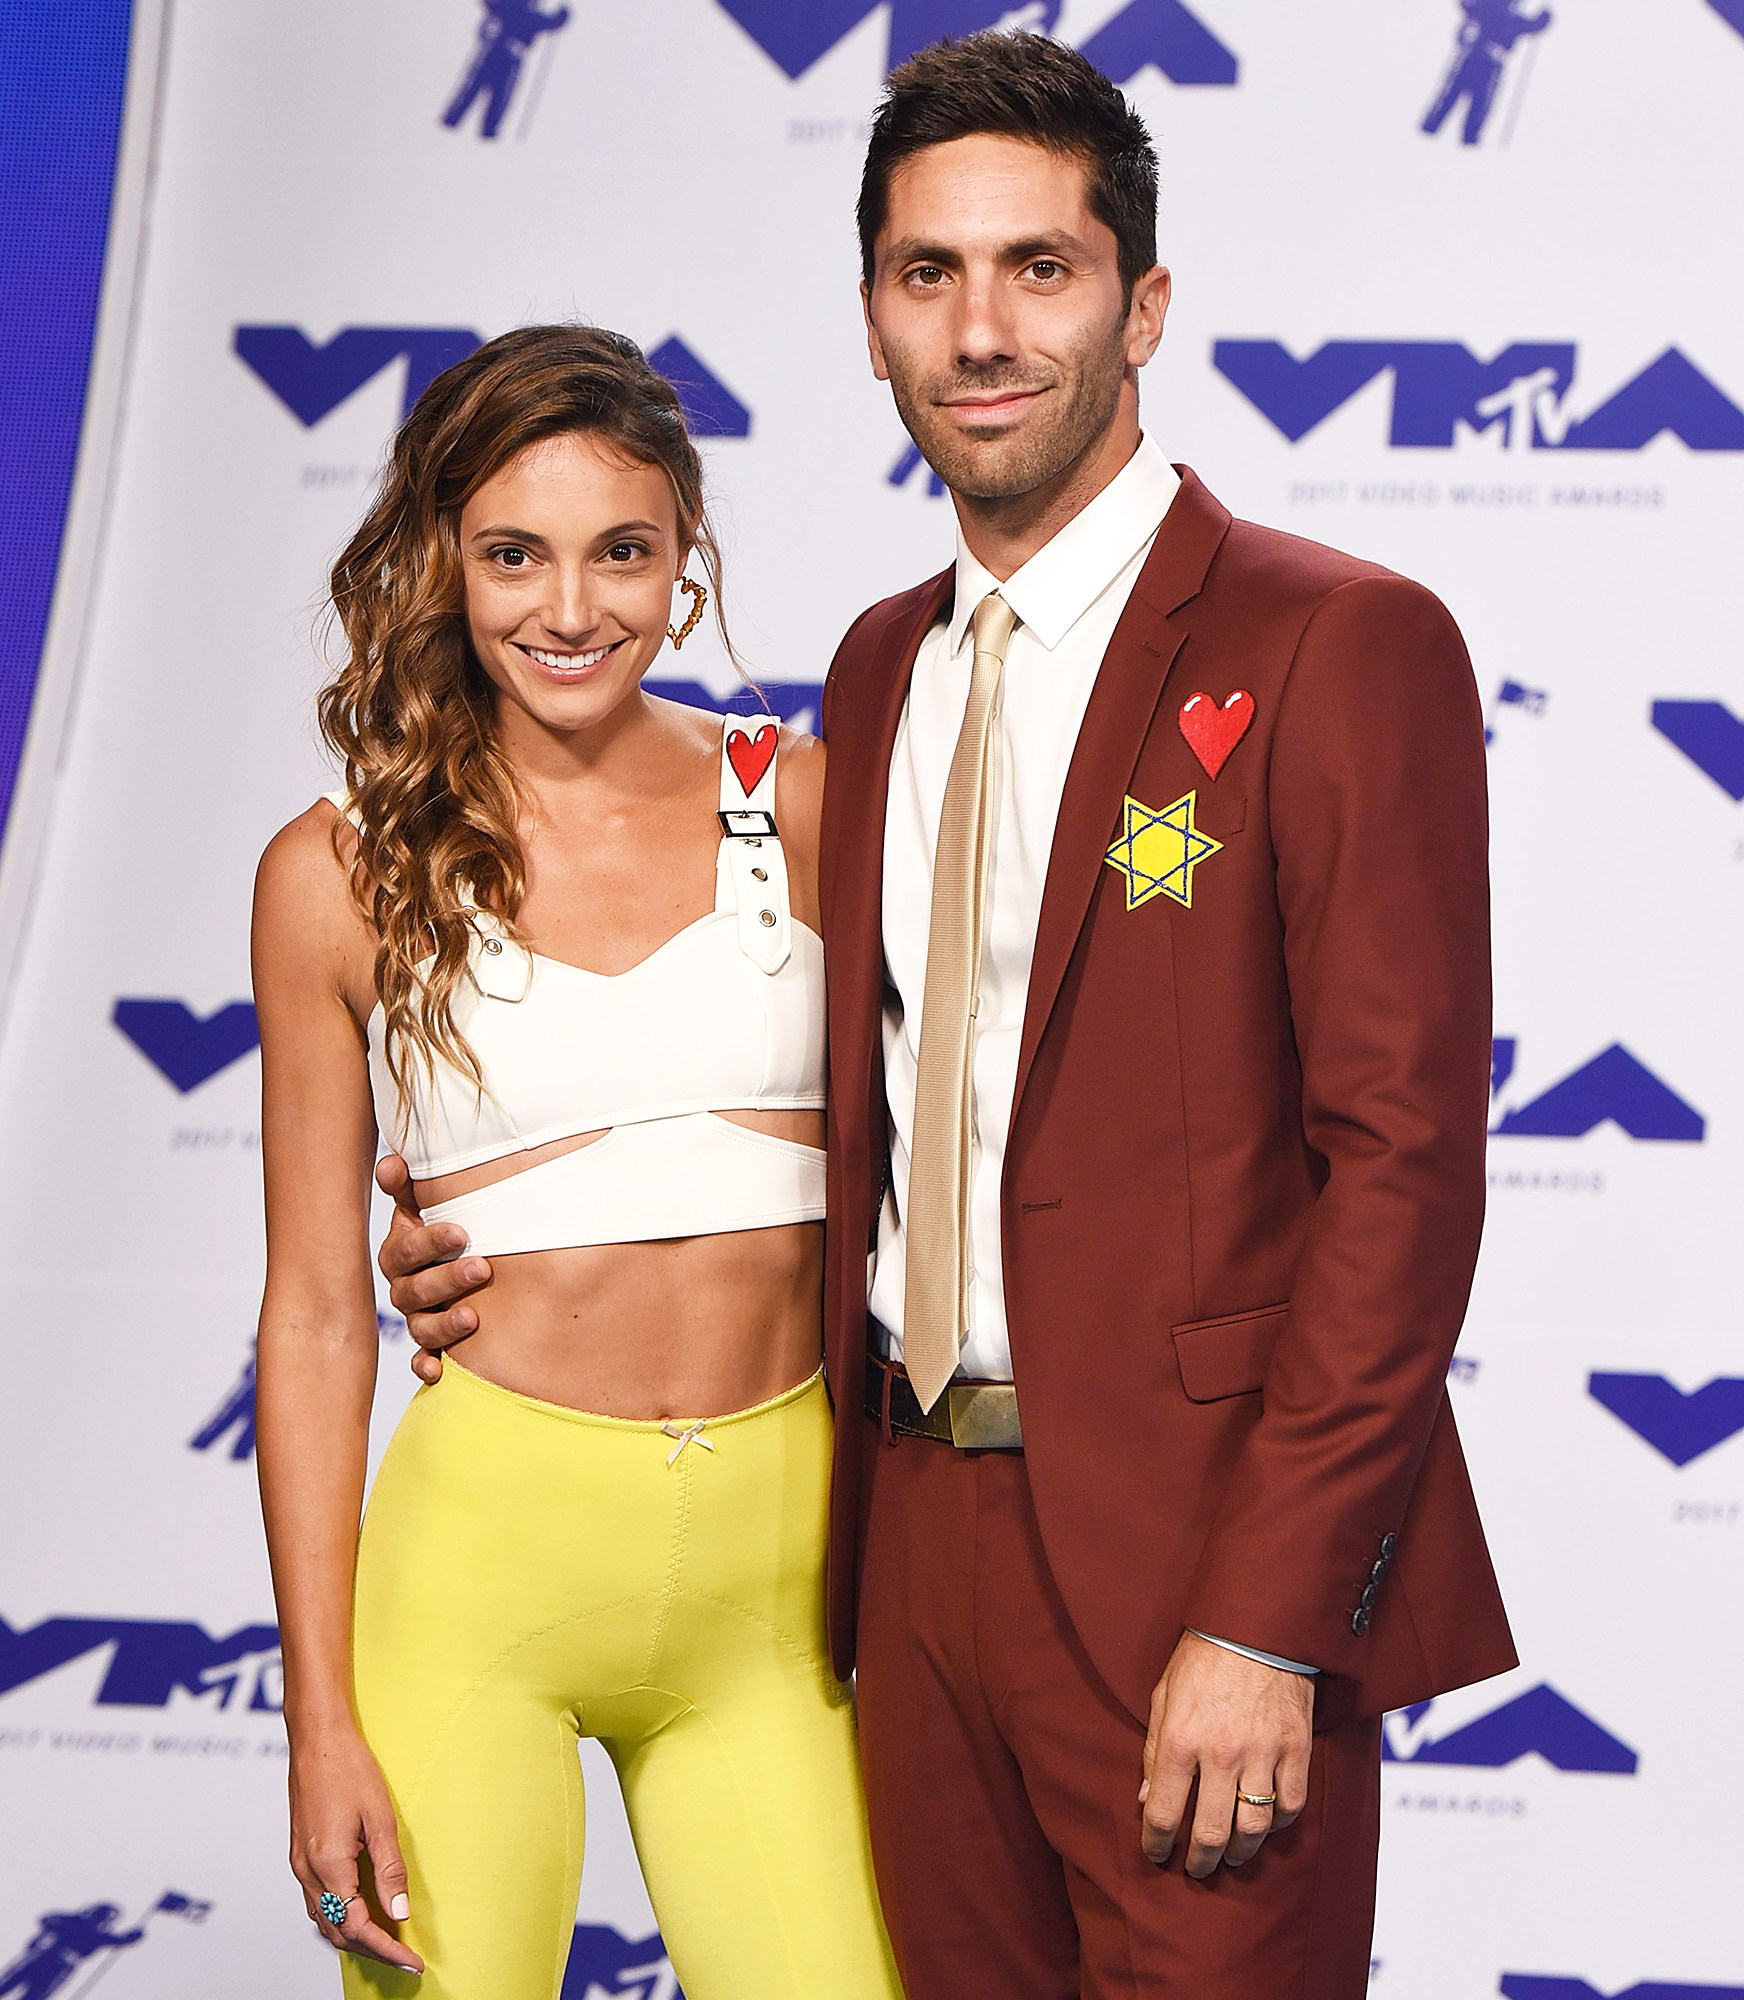 Laura Perlongo Nev Schulman Catfish Address Negativity